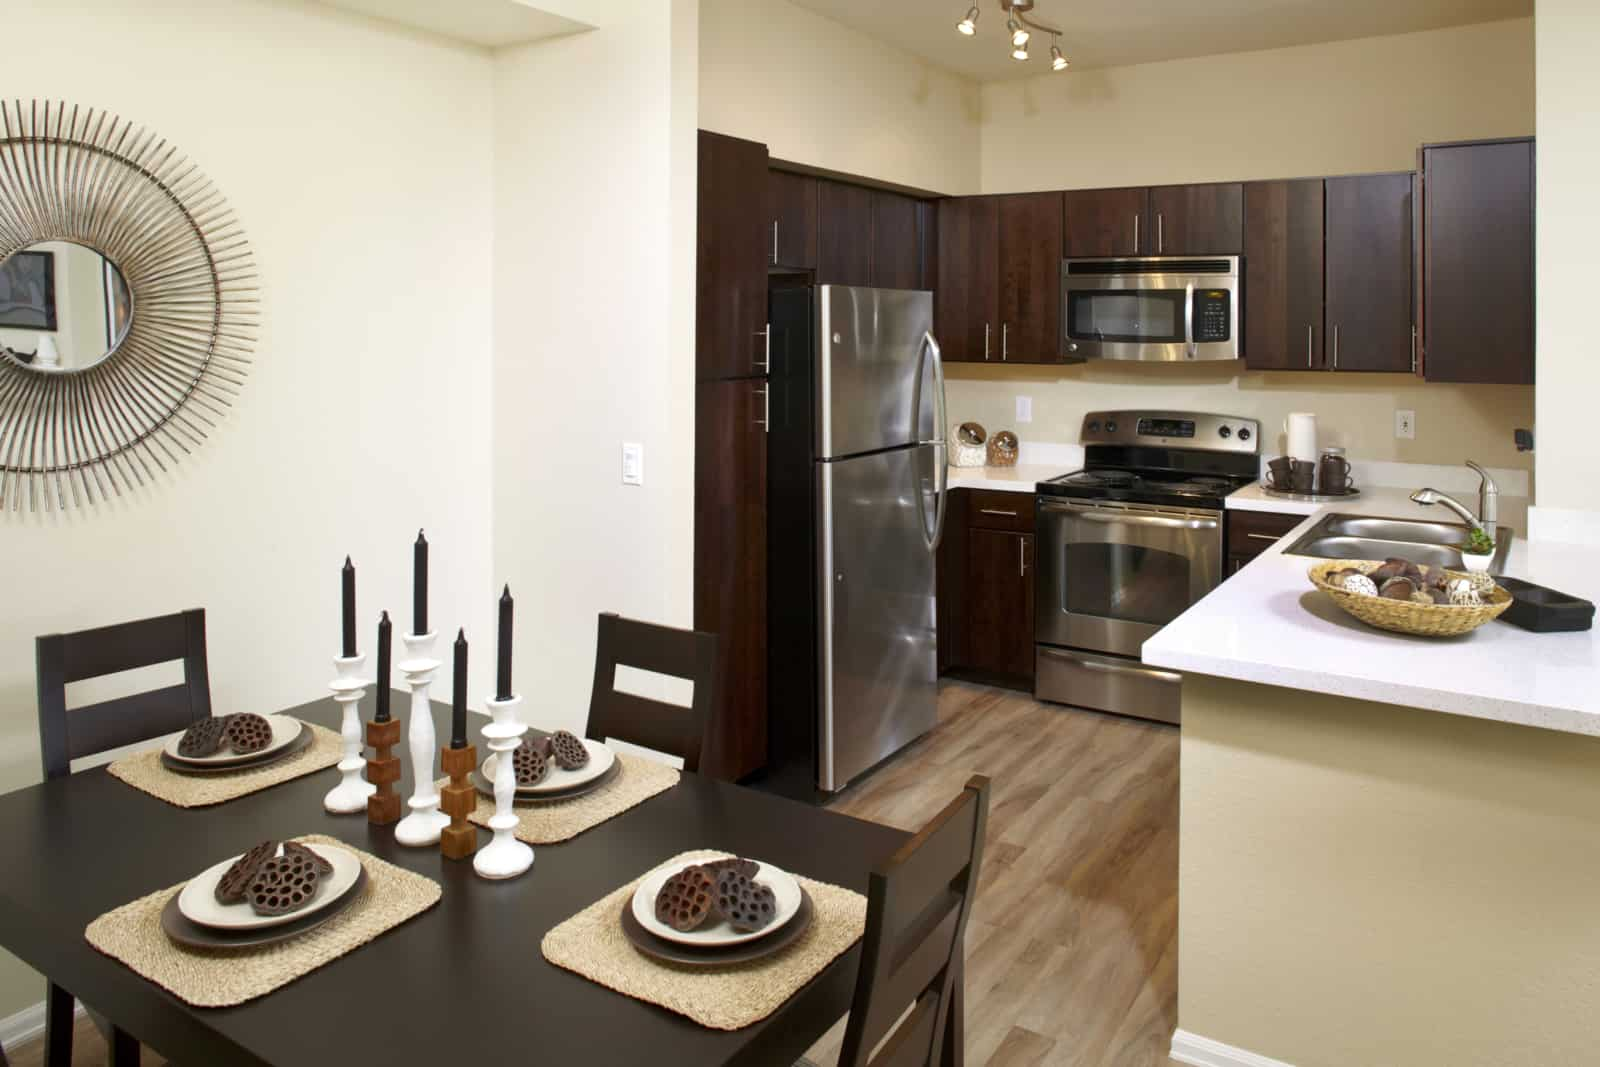 interior of a kitchen with stainless steel appliances, white countertop and a dining table and chairs in the foreground.